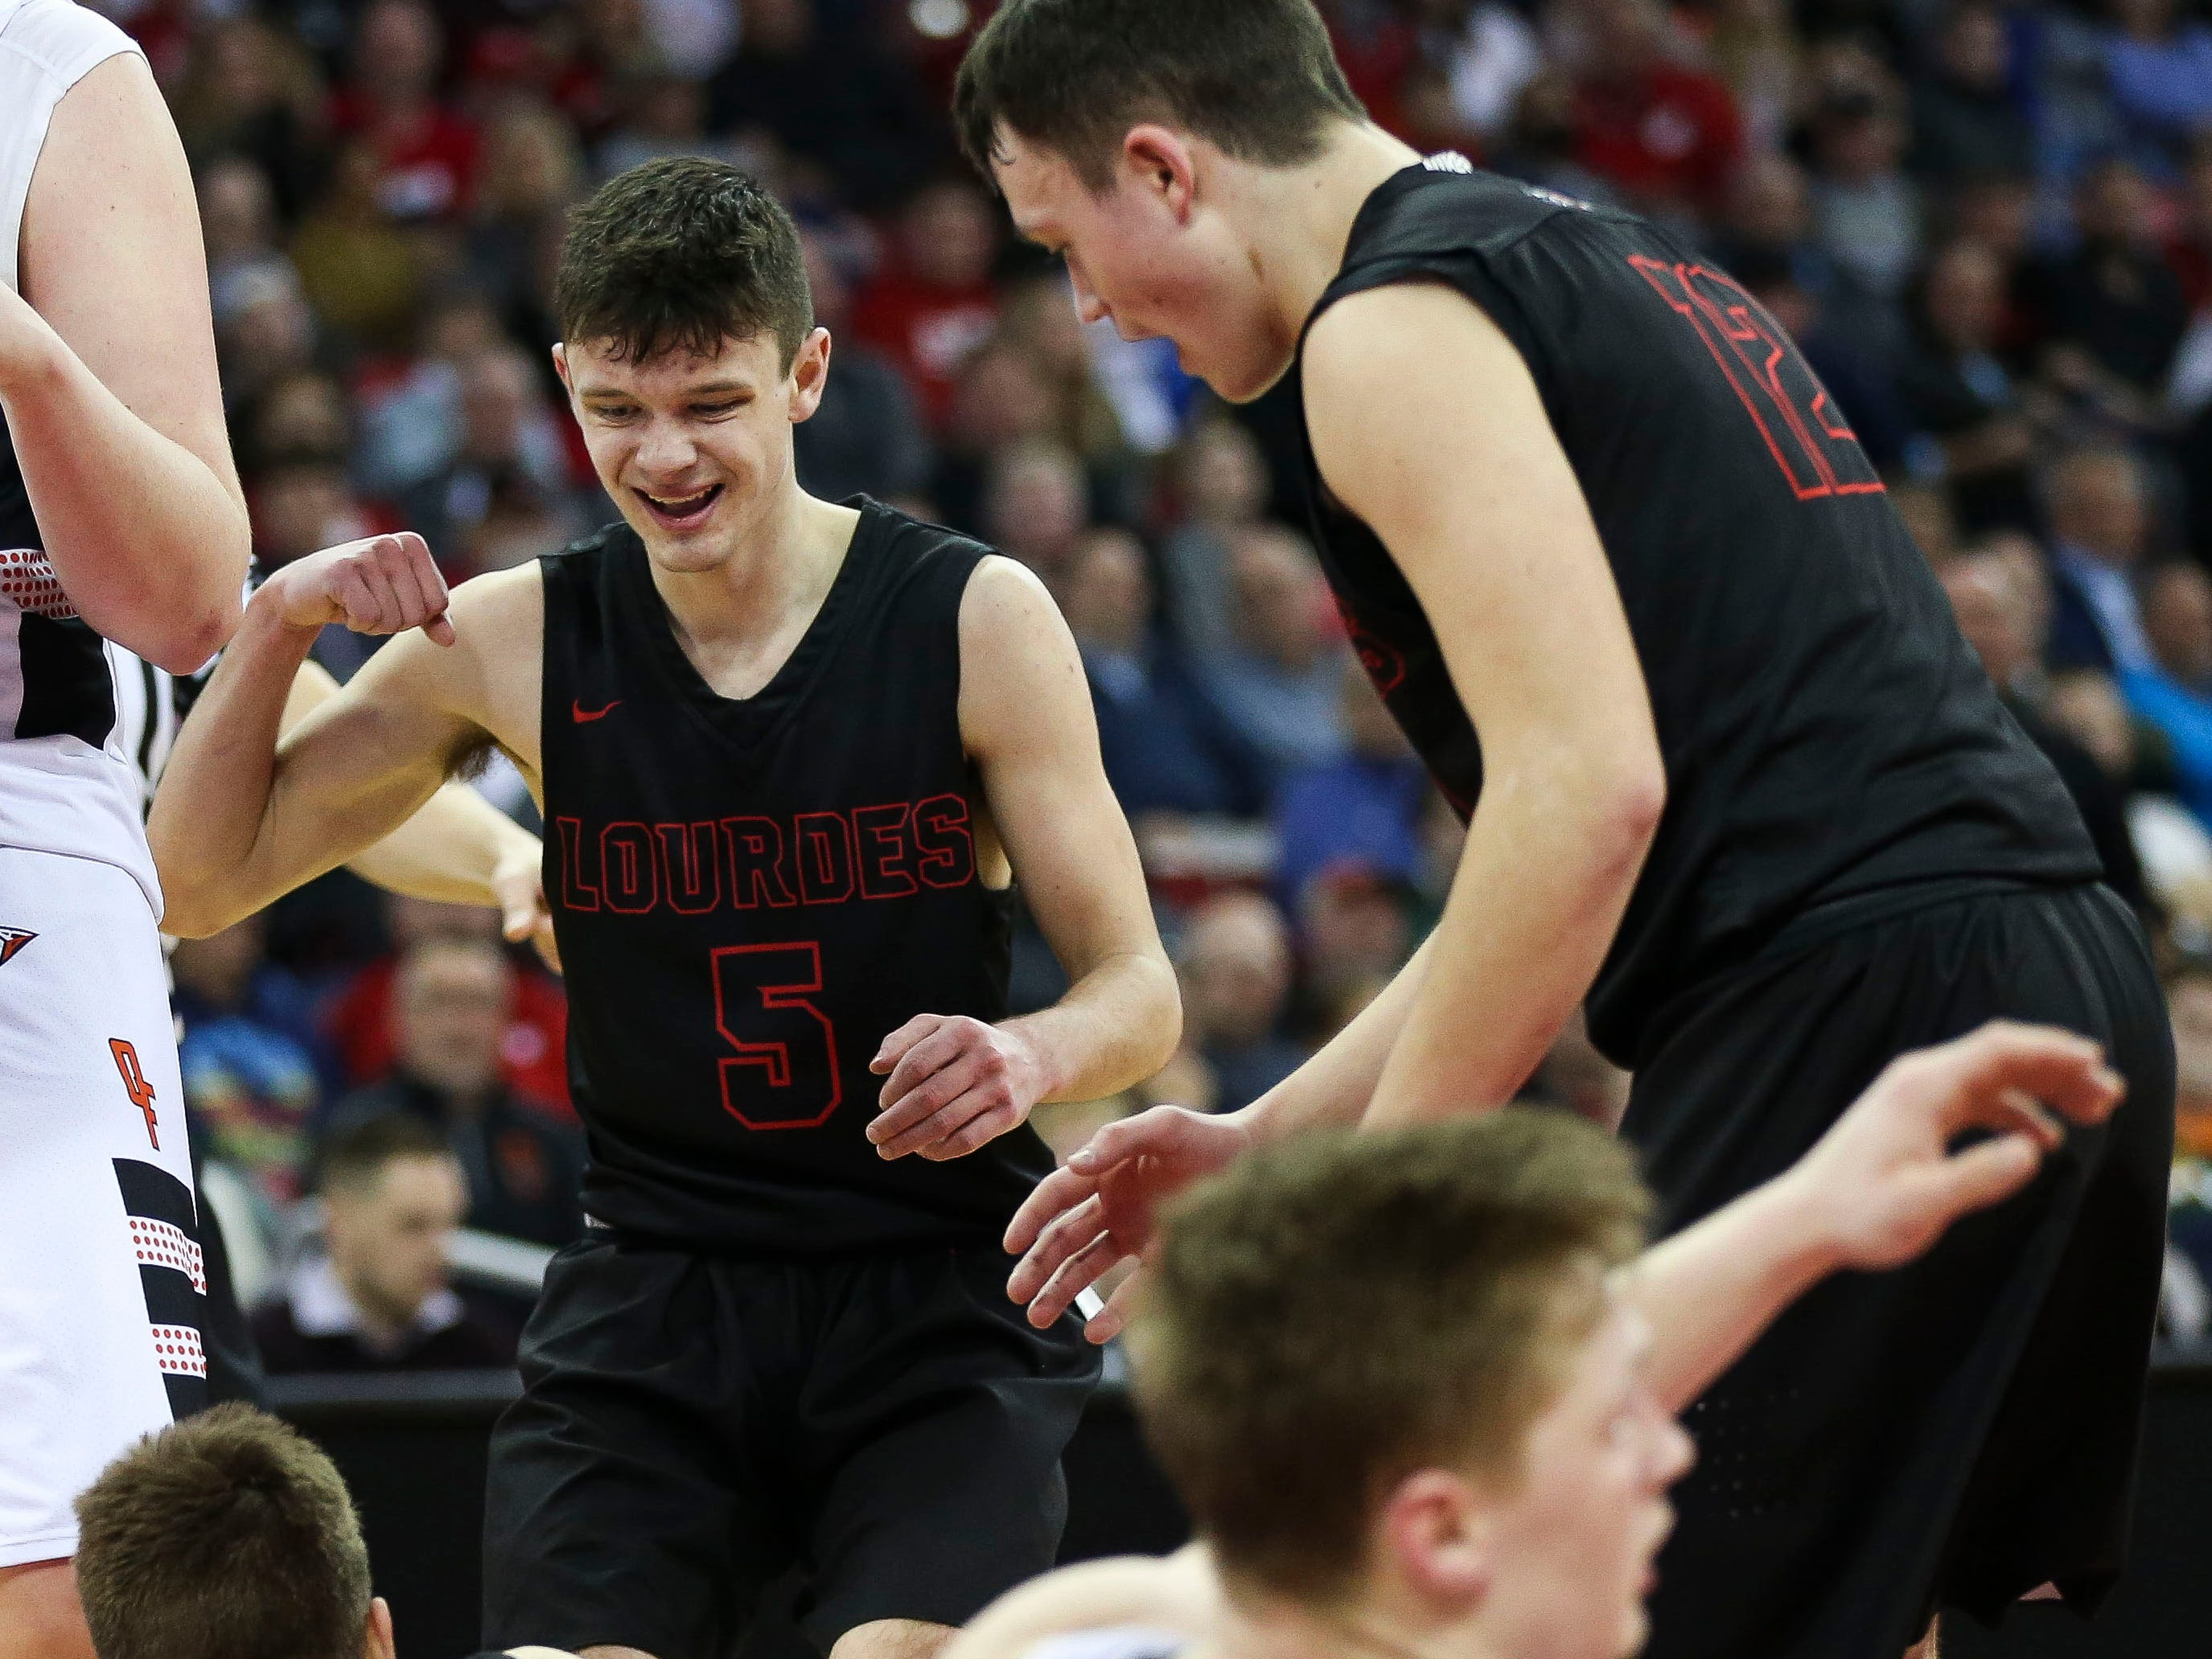 Lourdes Academy's Jack McKellips (5) reacts after a made basket and foul call against Osseo-Fairchild High School in a Division 4 boys basketball state semifinal on Thursday, March 14, 2019, at the Kohl Center in Madison, Wis. Lourdes Academy won the game, 70-68, on a go-ahead basket with 1.5 seconds remaining.